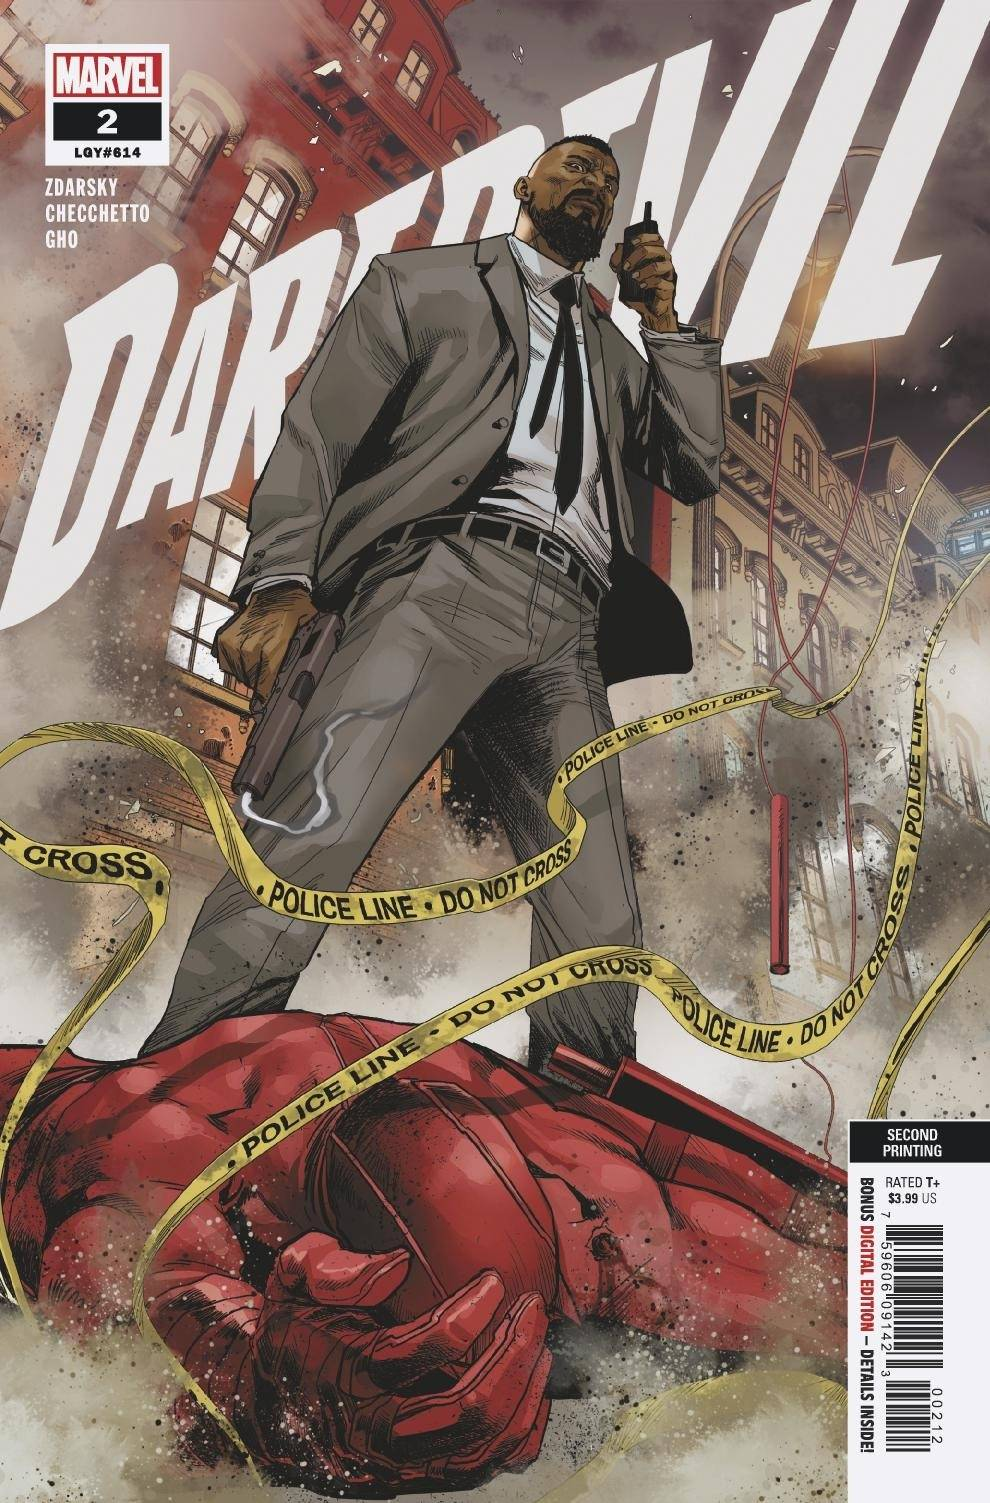 DAREDEVIL #2 2ND PTG CHECCHETTO VAR